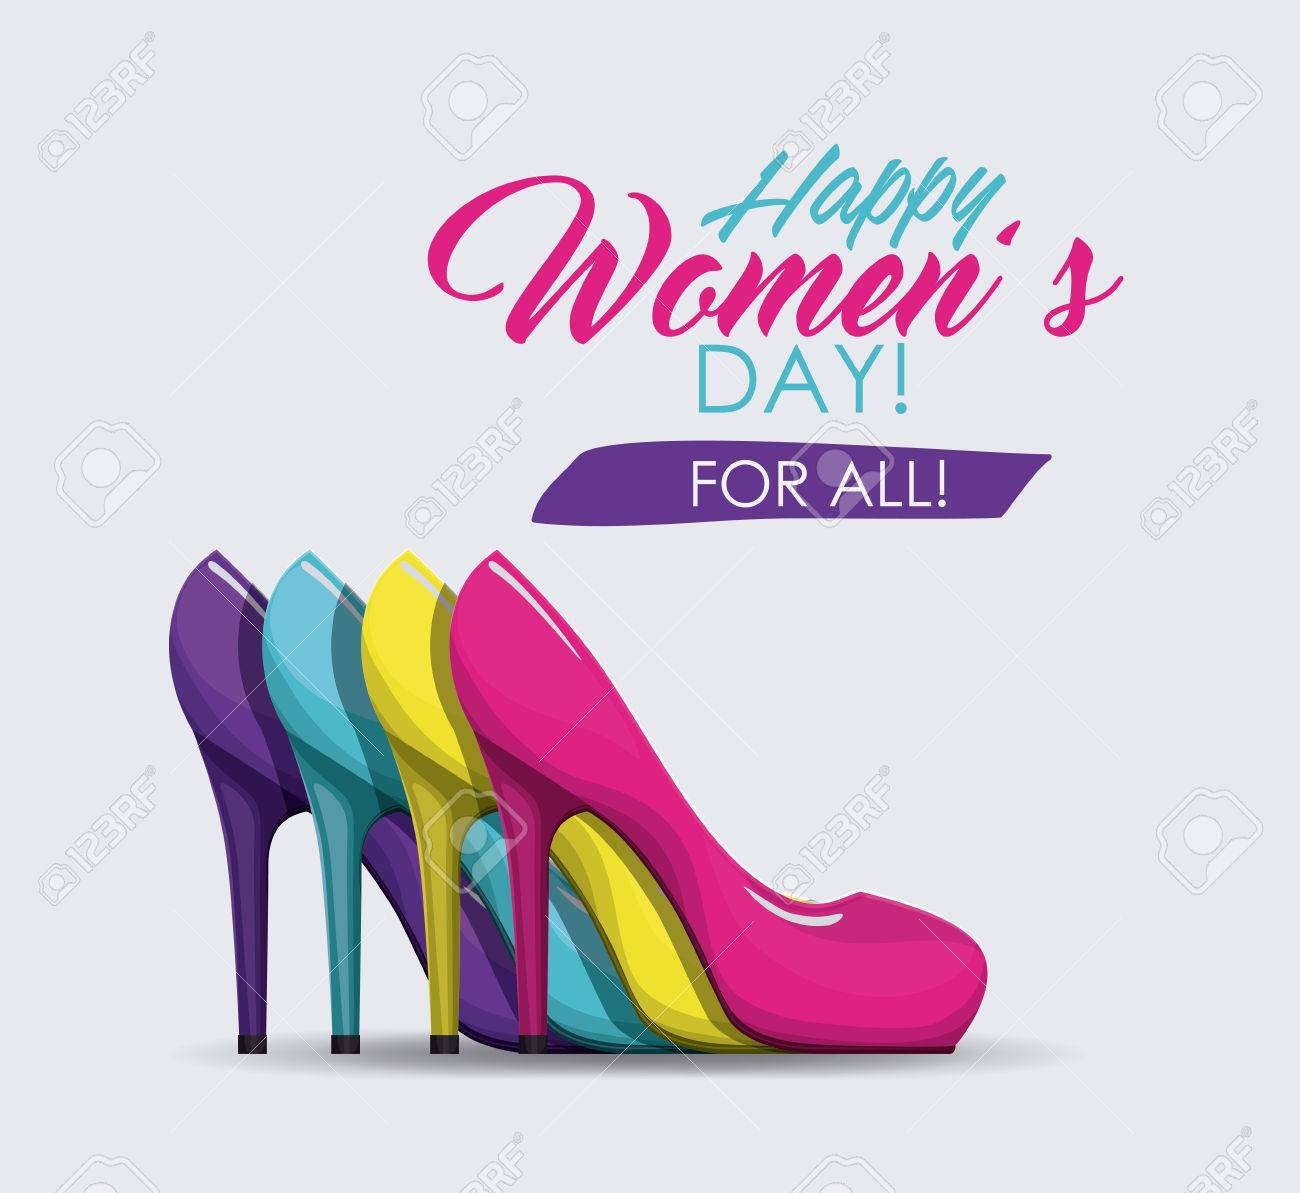 happy womens day design, vector illustration eps10 graphic - 52894547